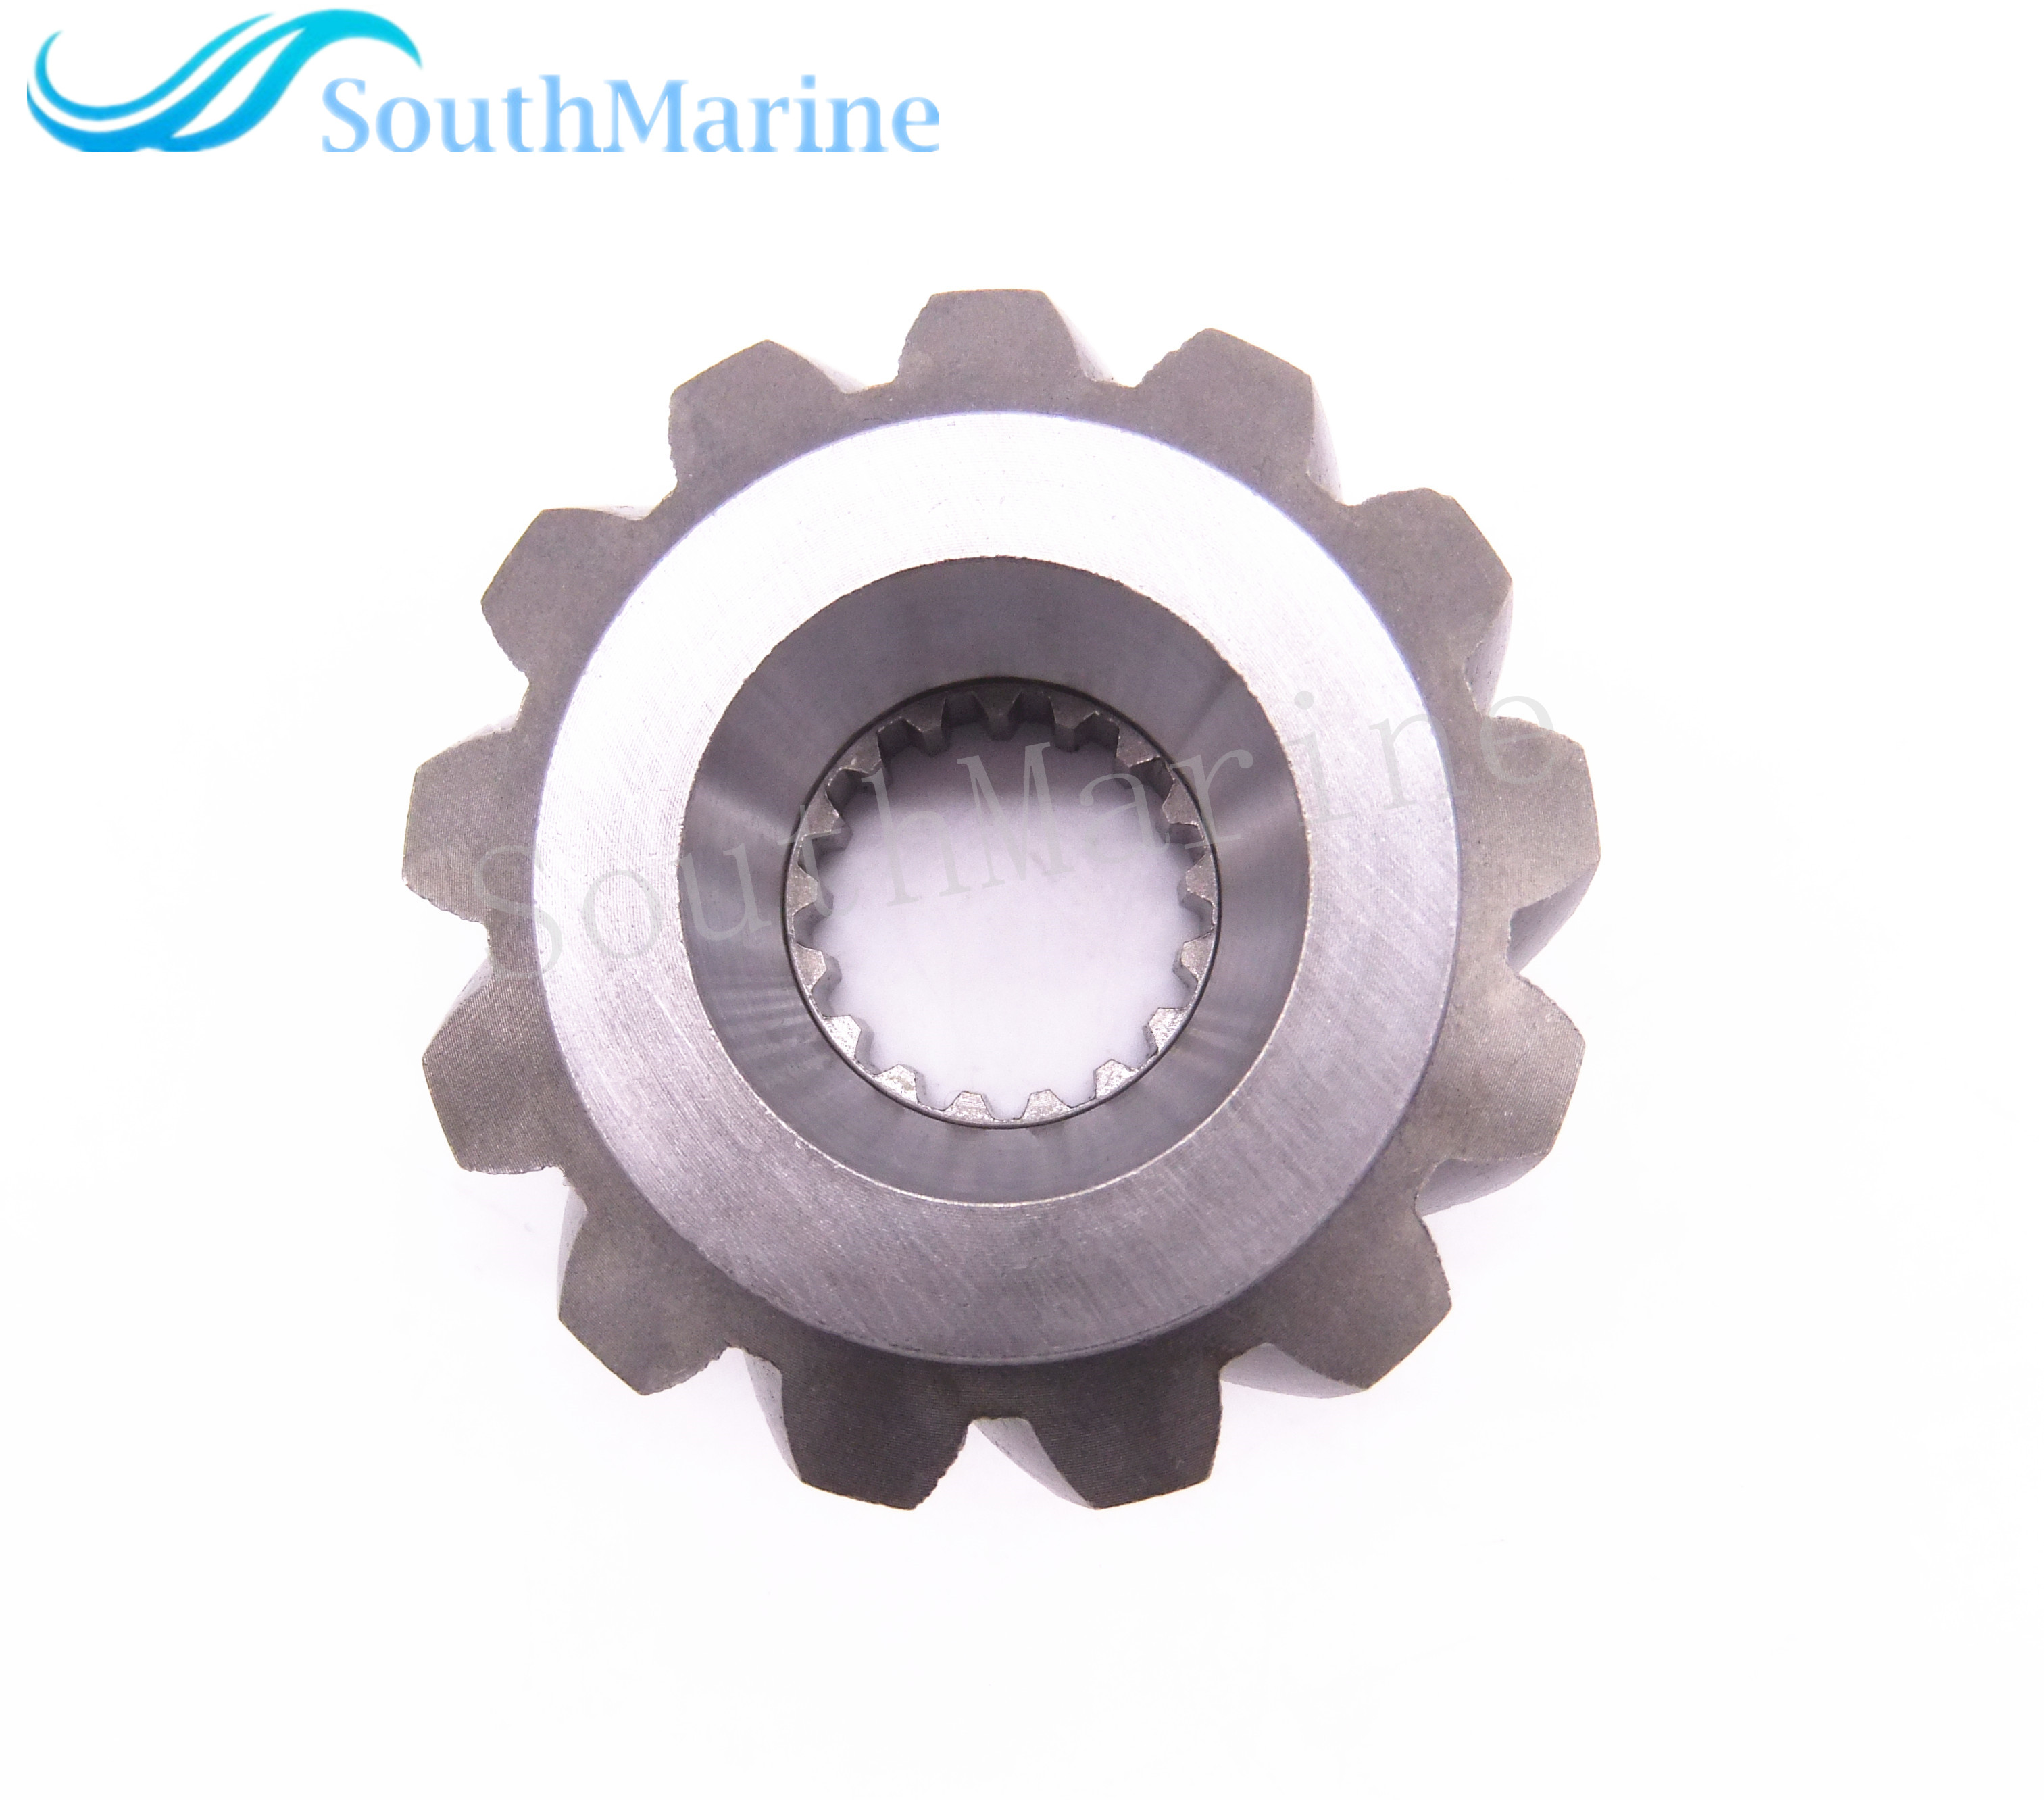 Boat Engine Boat Motor T85-04000605 Pinion Gear For Parsun Hdx Outboard Engine 2-stroke T75 T85 T90 Free Shipping Available In Various Designs And Specifications For Your Selection Automobiles & Motorcycles